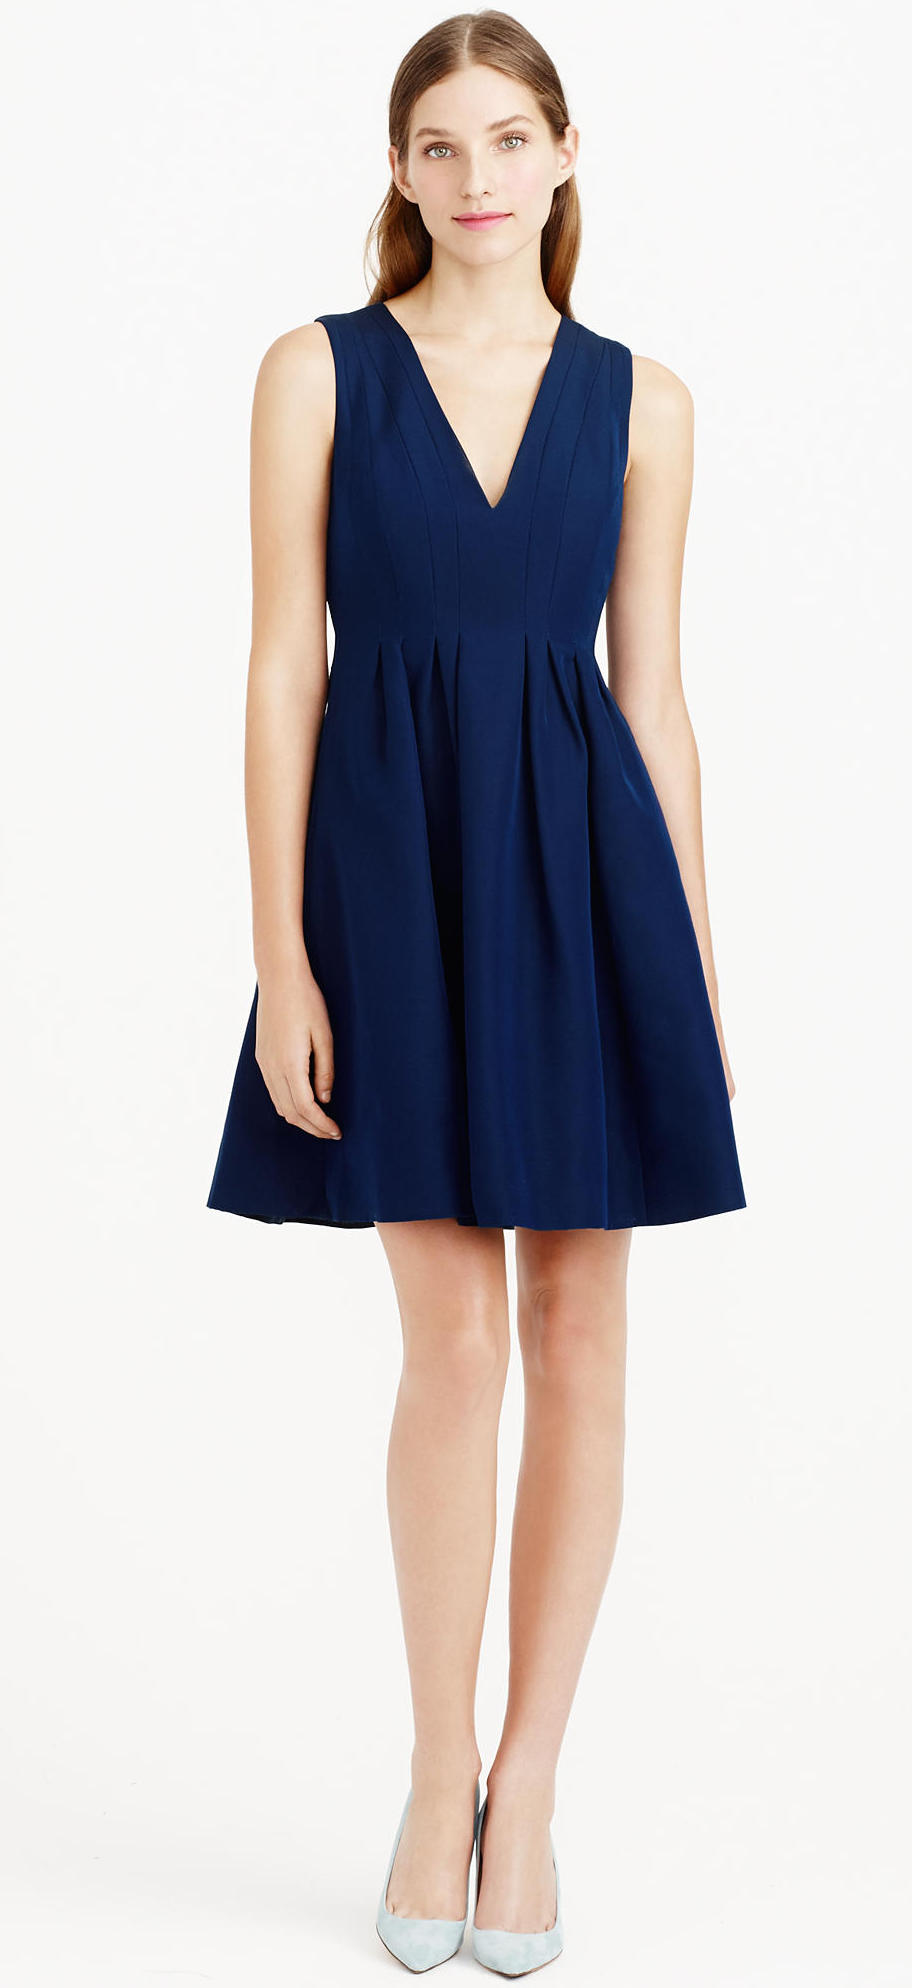 0da027fbd0e Bridesmaid Dresses Like J Crew - Data Dynamic AG